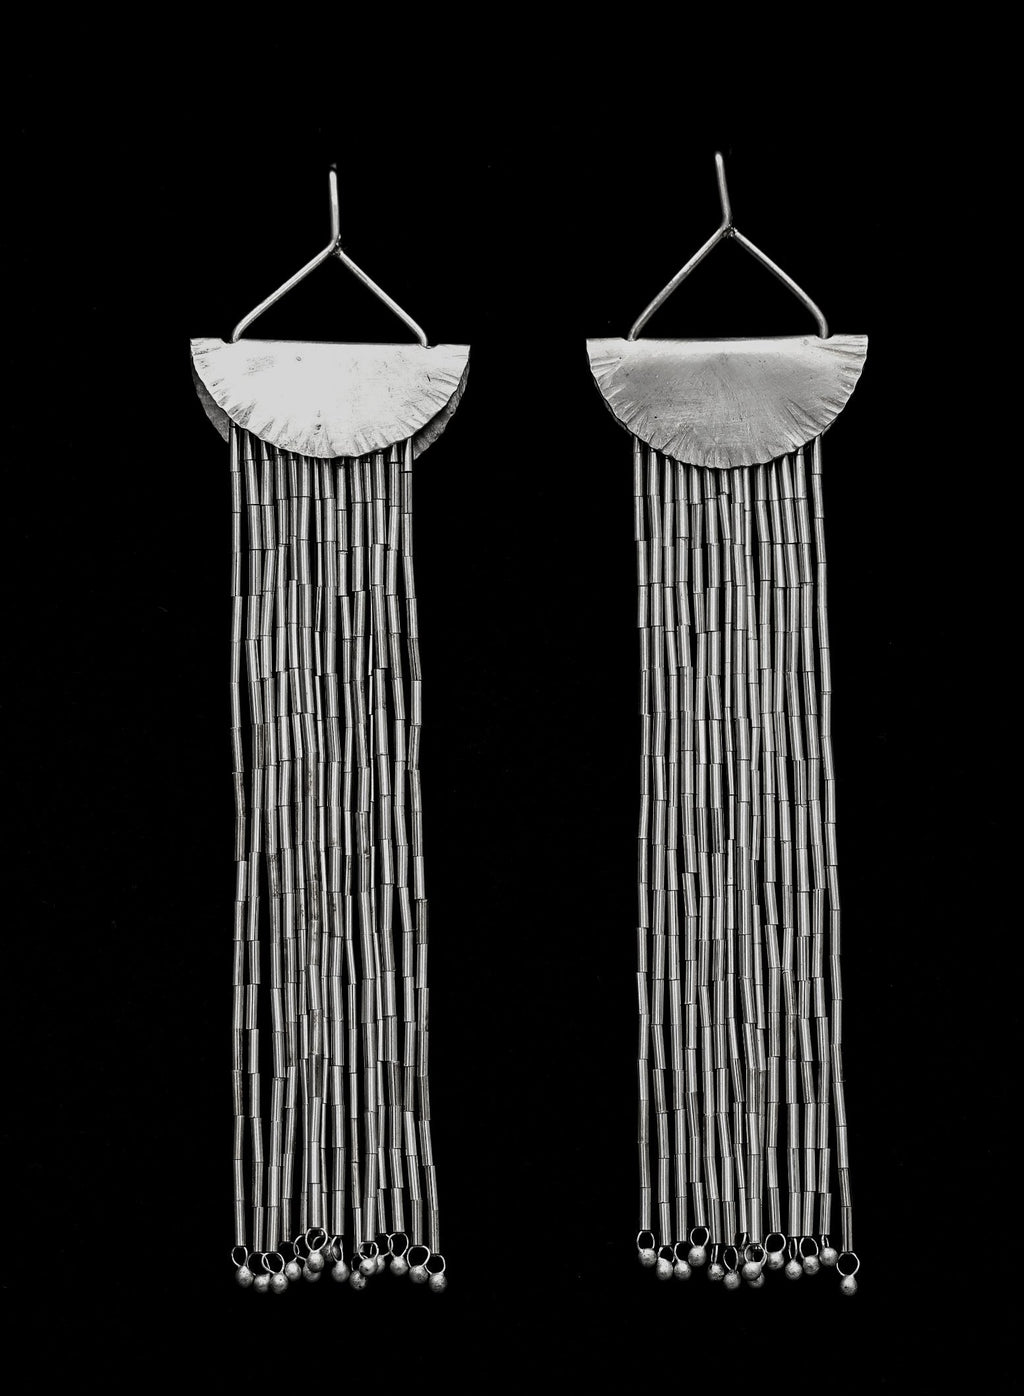 Quarter Moon earrings in Silver earrings Shrine Jewelry